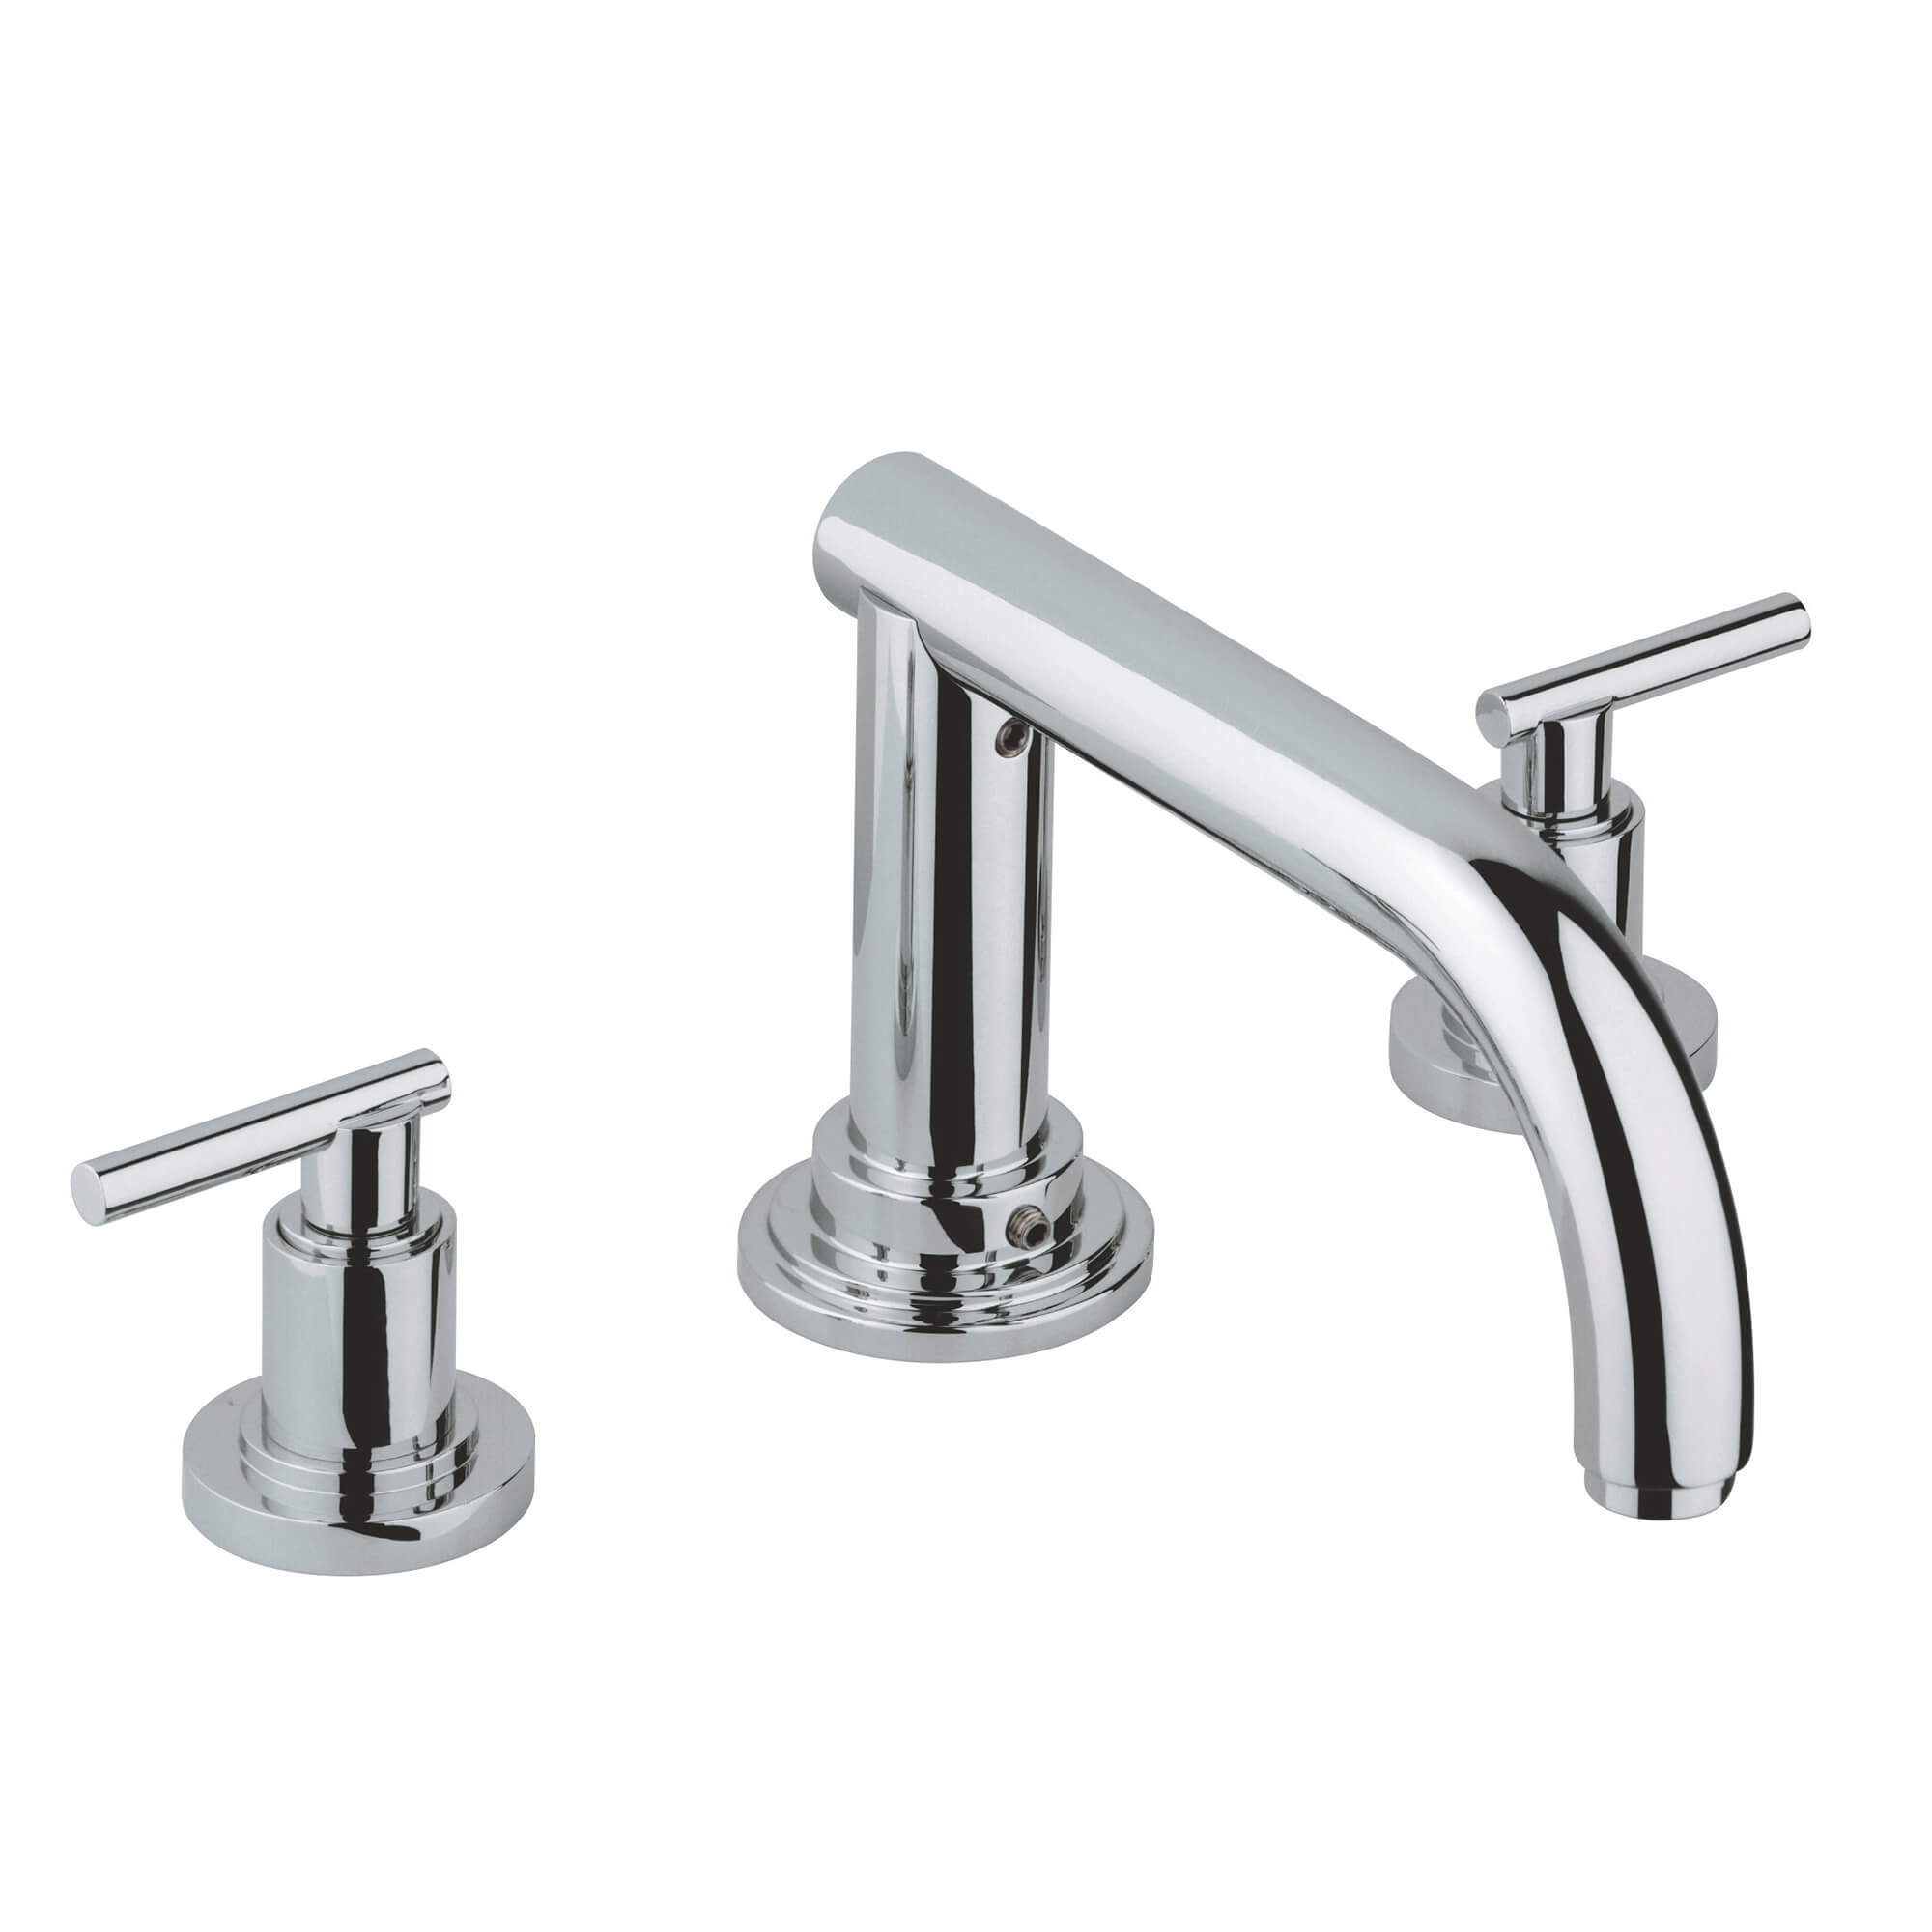 Handle Us GROHE CHROME